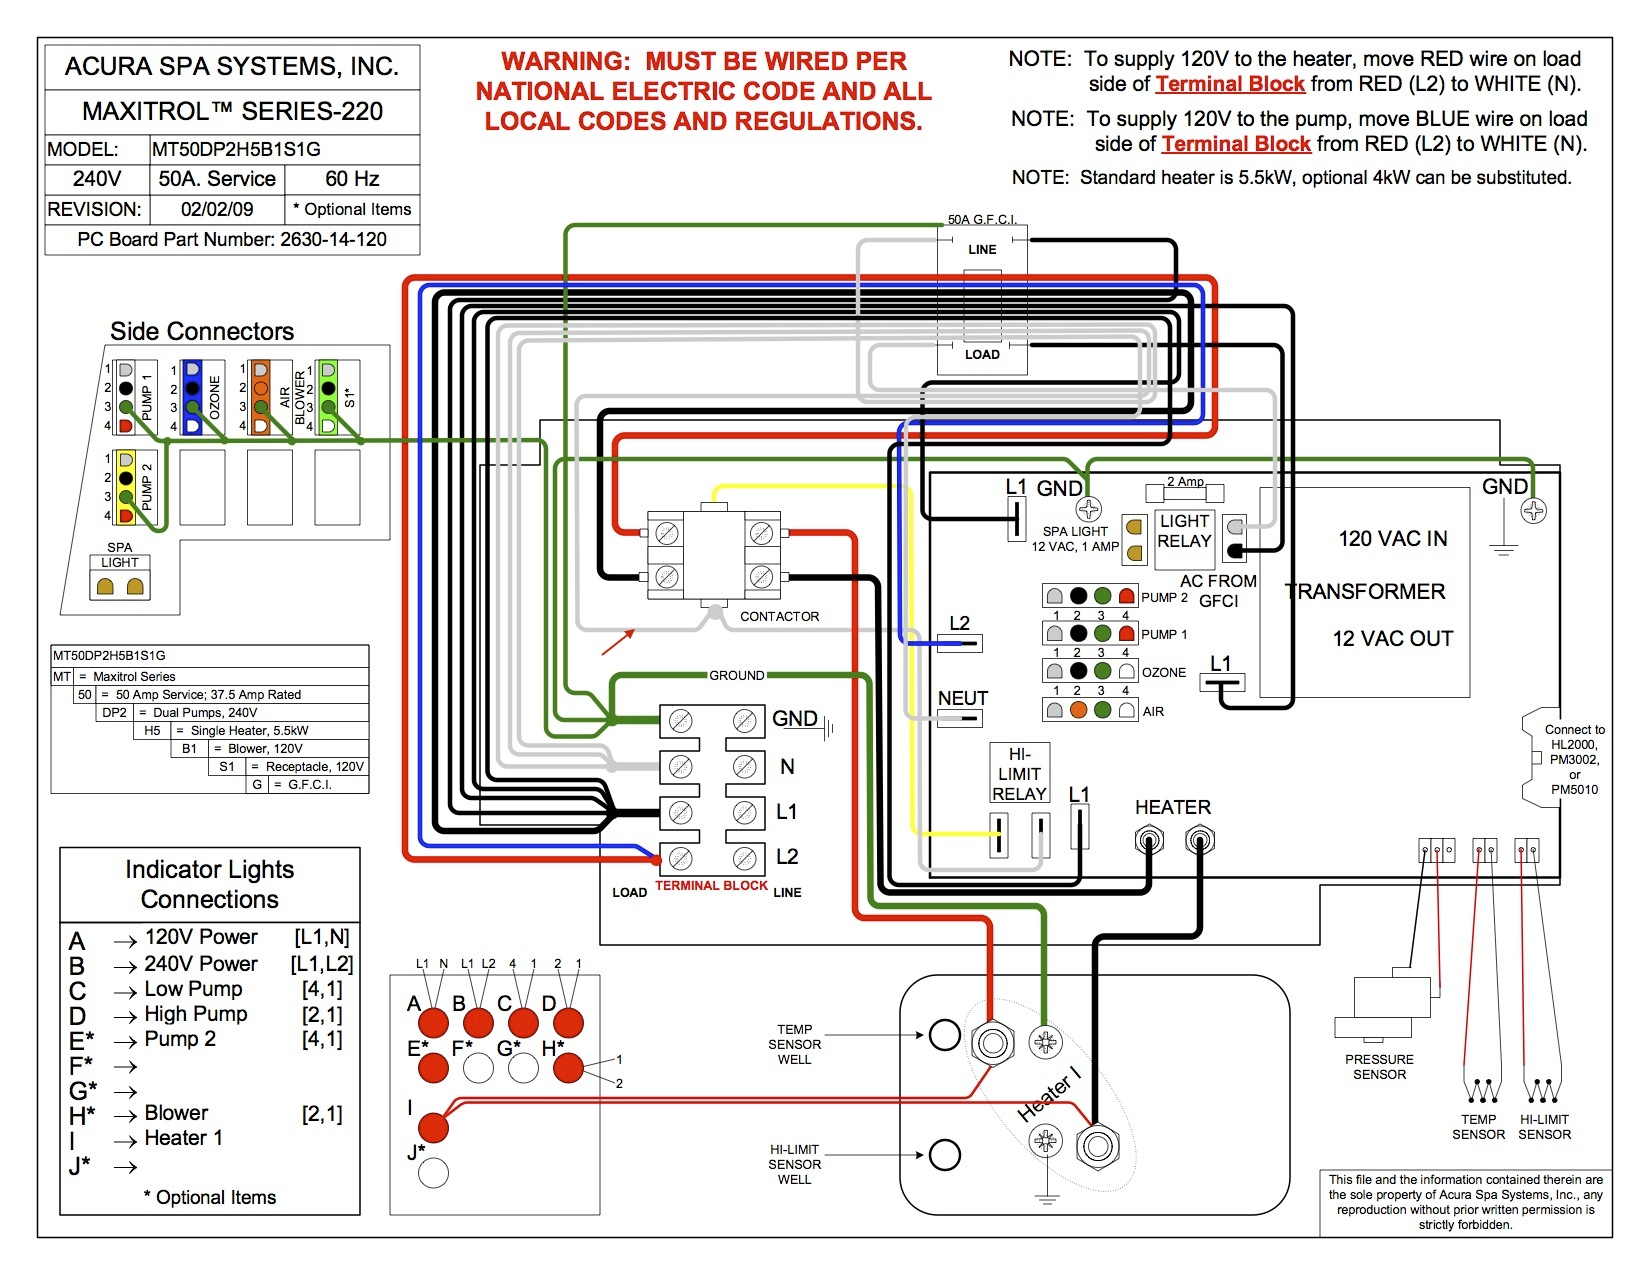 Acura Spa Wiring Diagram MT50DP2H5B1S1G spa pump motor wiring diagram, century motors used in ultra jet hot springs hot tub wiring diagram at honlapkeszites.co